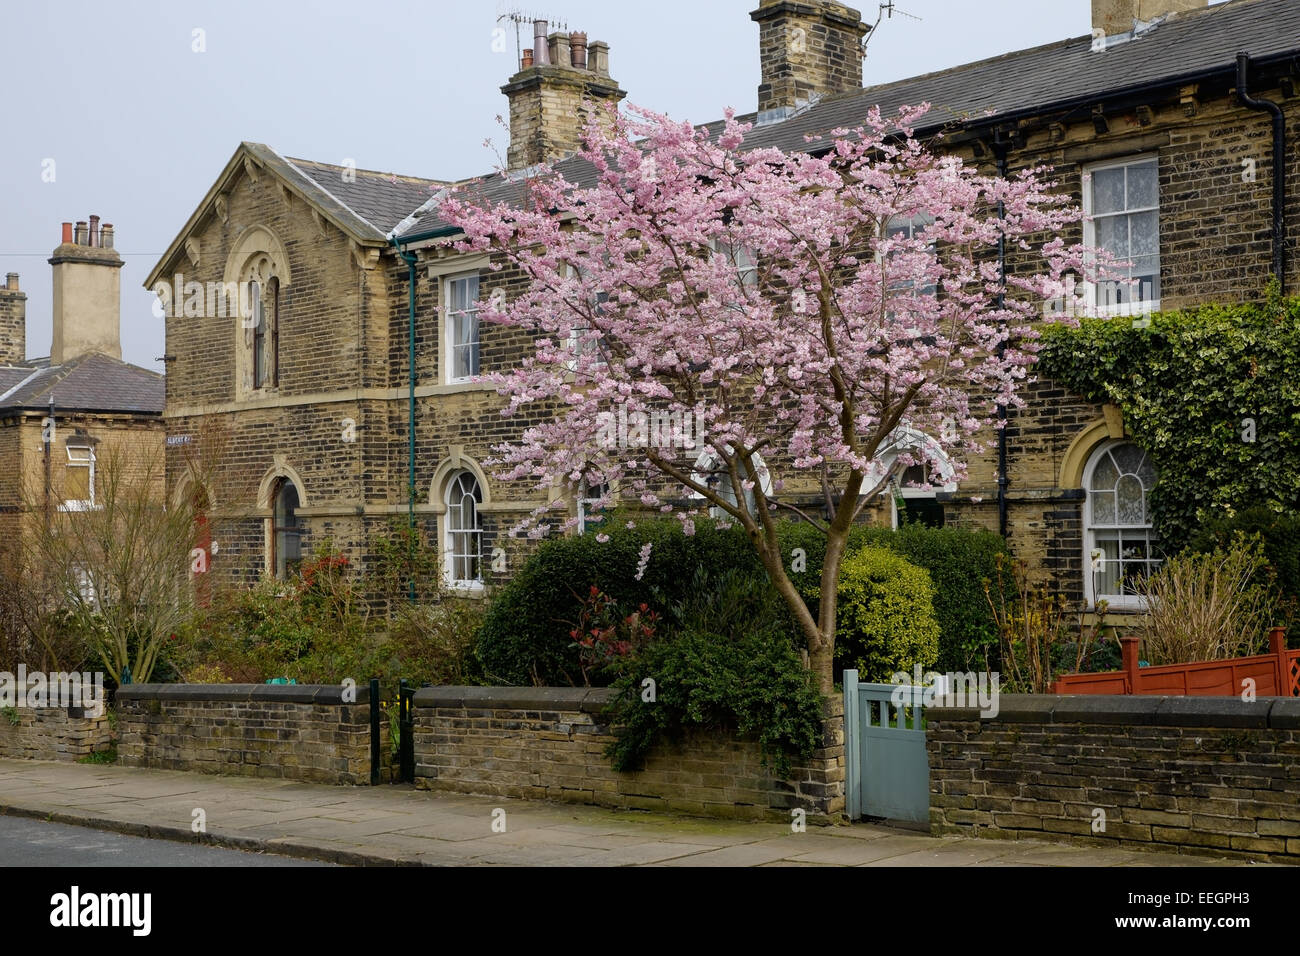 A cherry tree in bloom outside a Victorian house in the mill town of Saltaire, Yorkshire, UK. - Stock Image